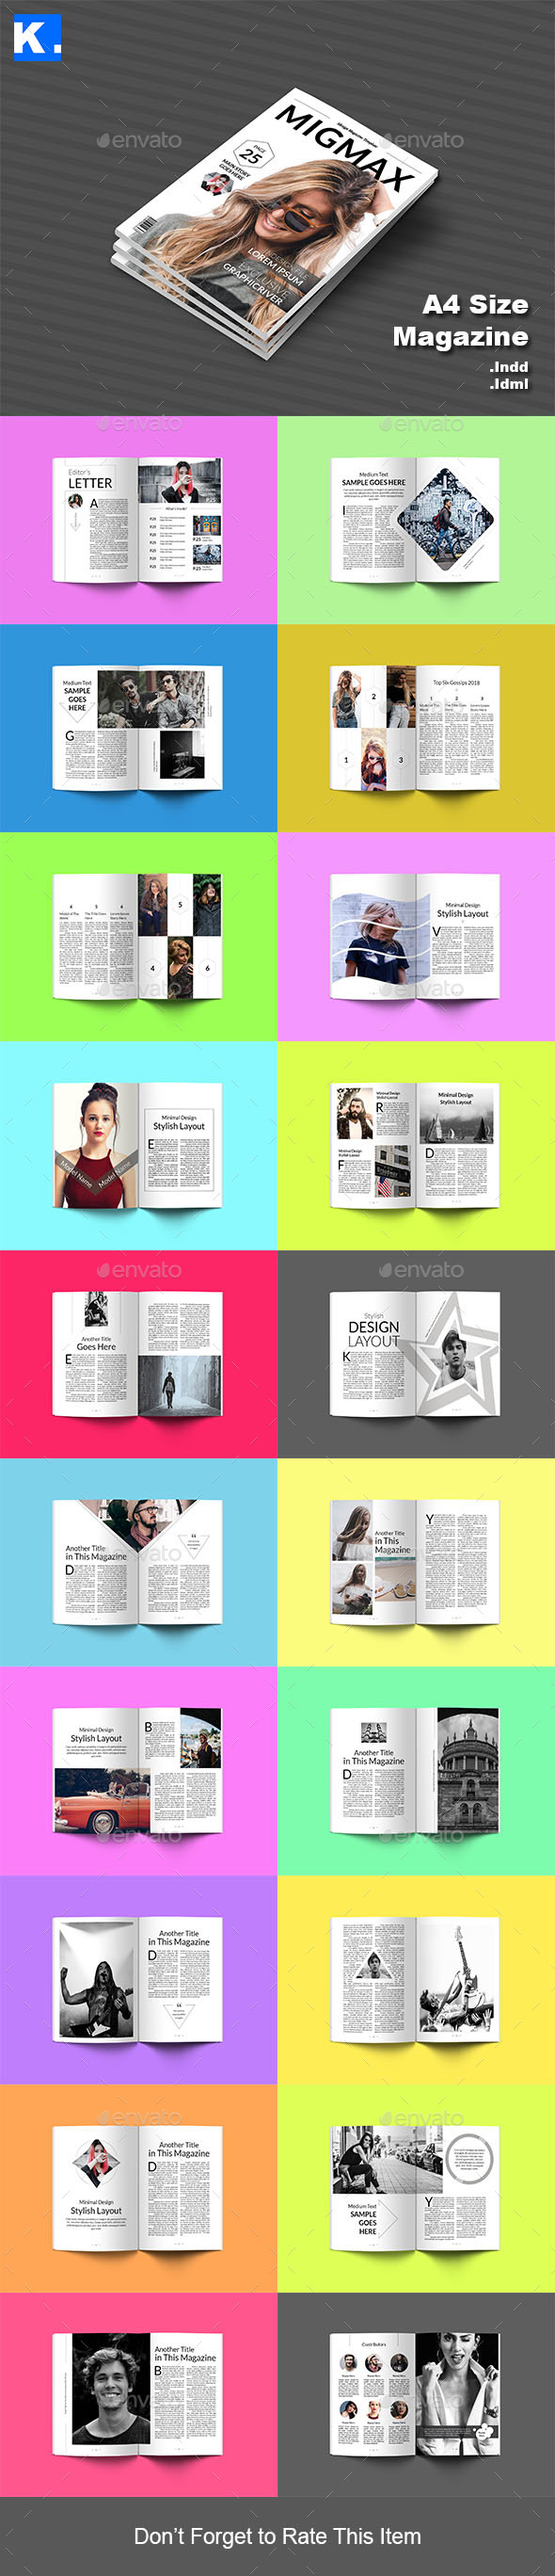 Indesign Magazine Template 6 - Magazines Print Templates